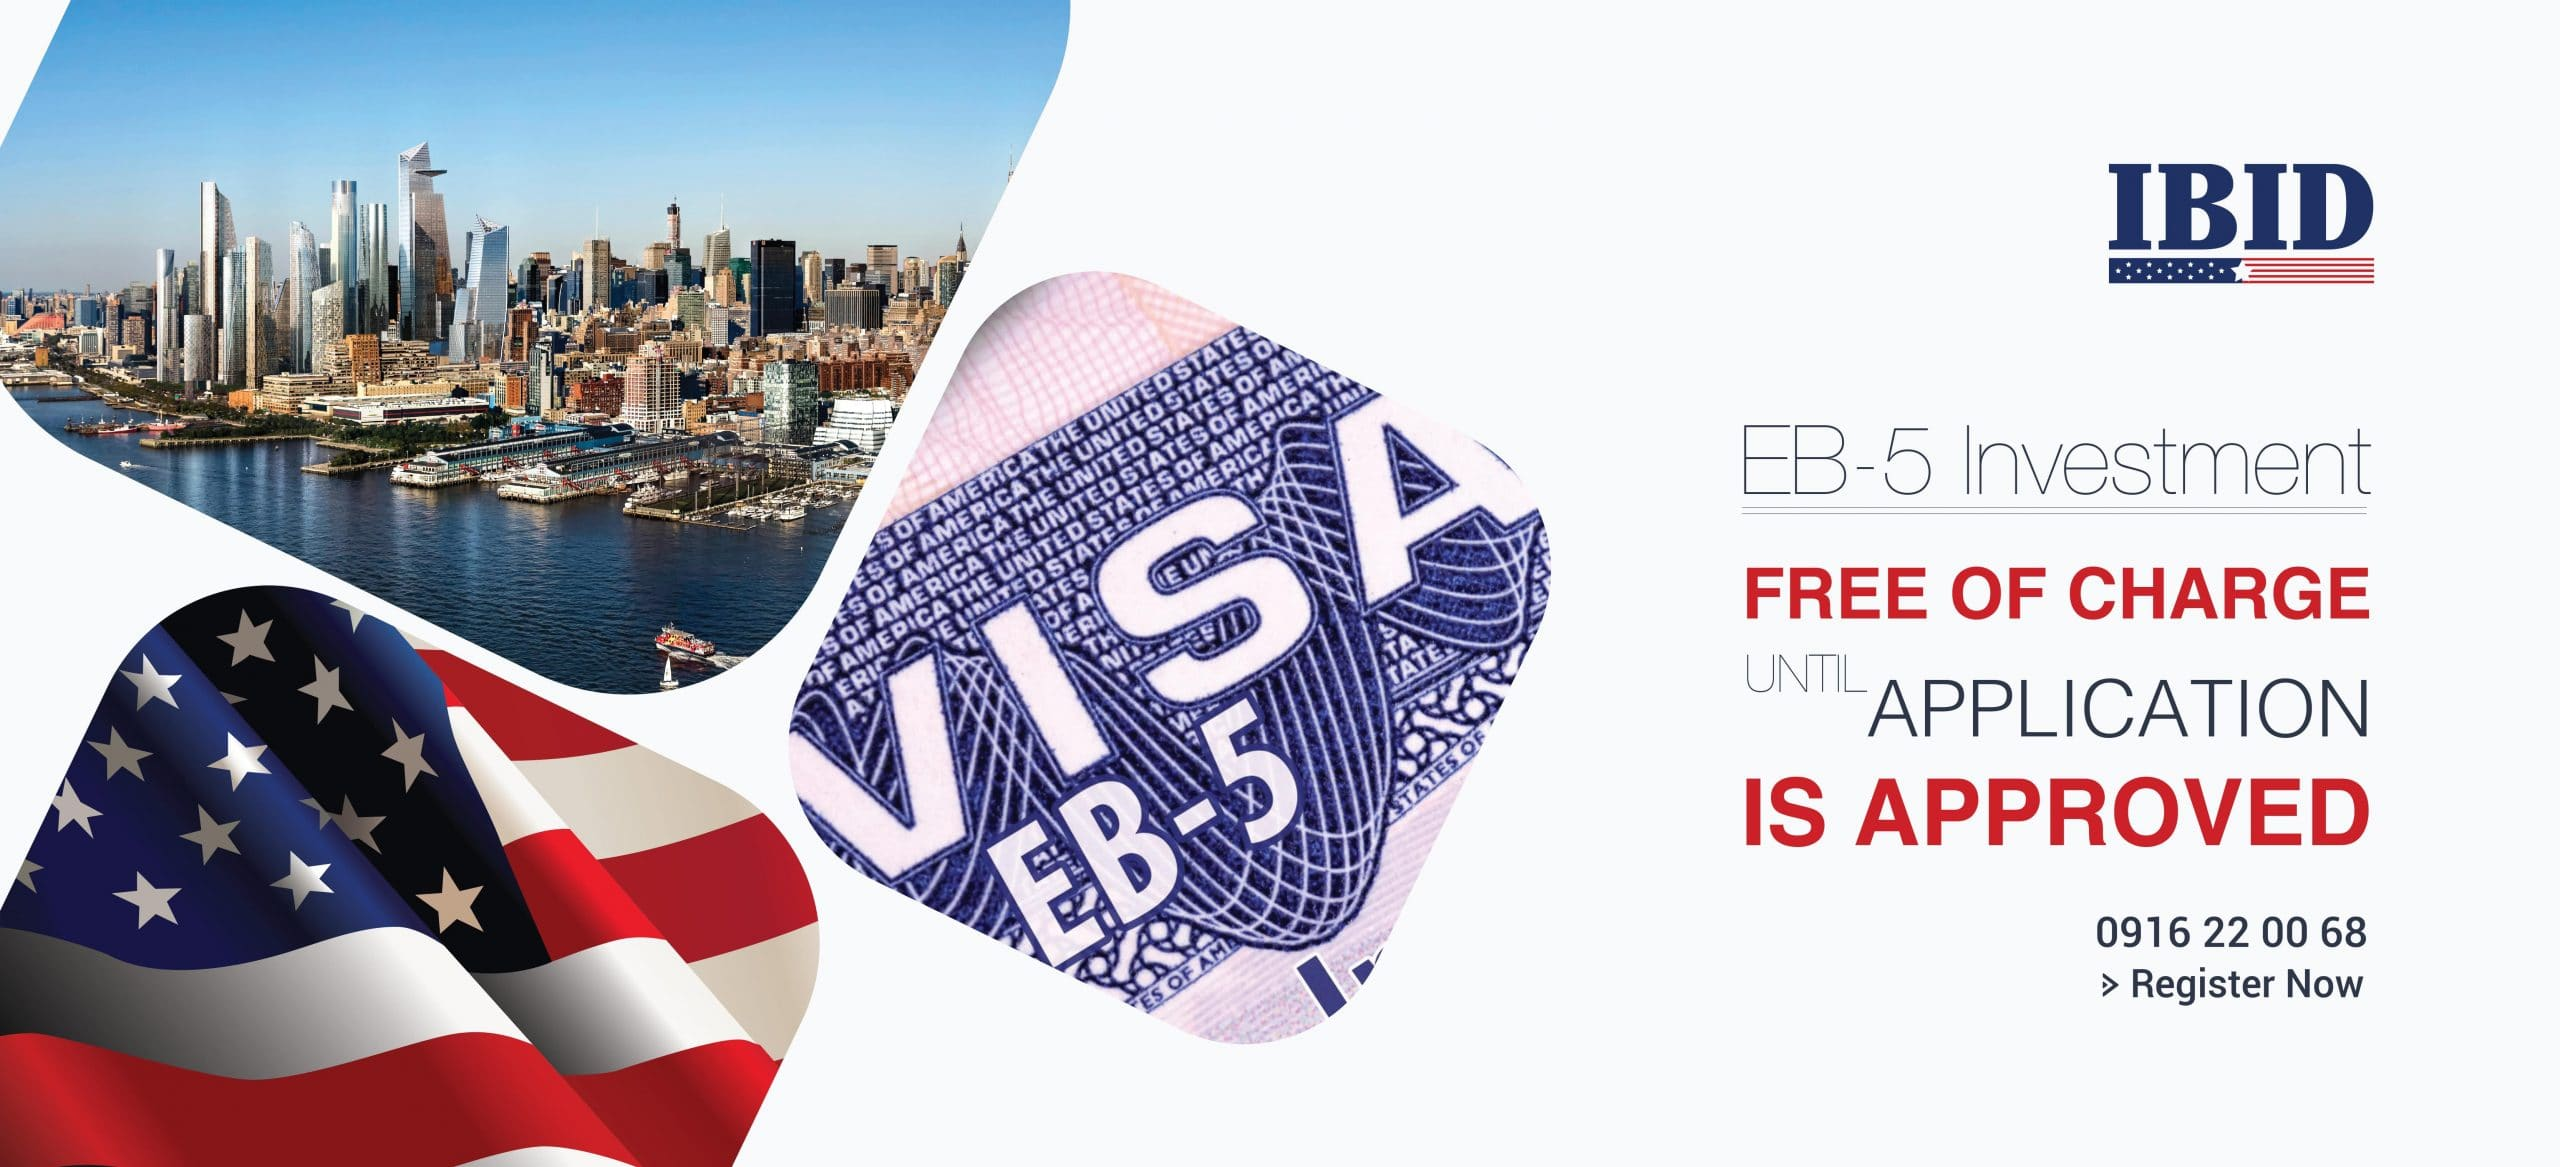 Free of charge for investing EB5 at IBID